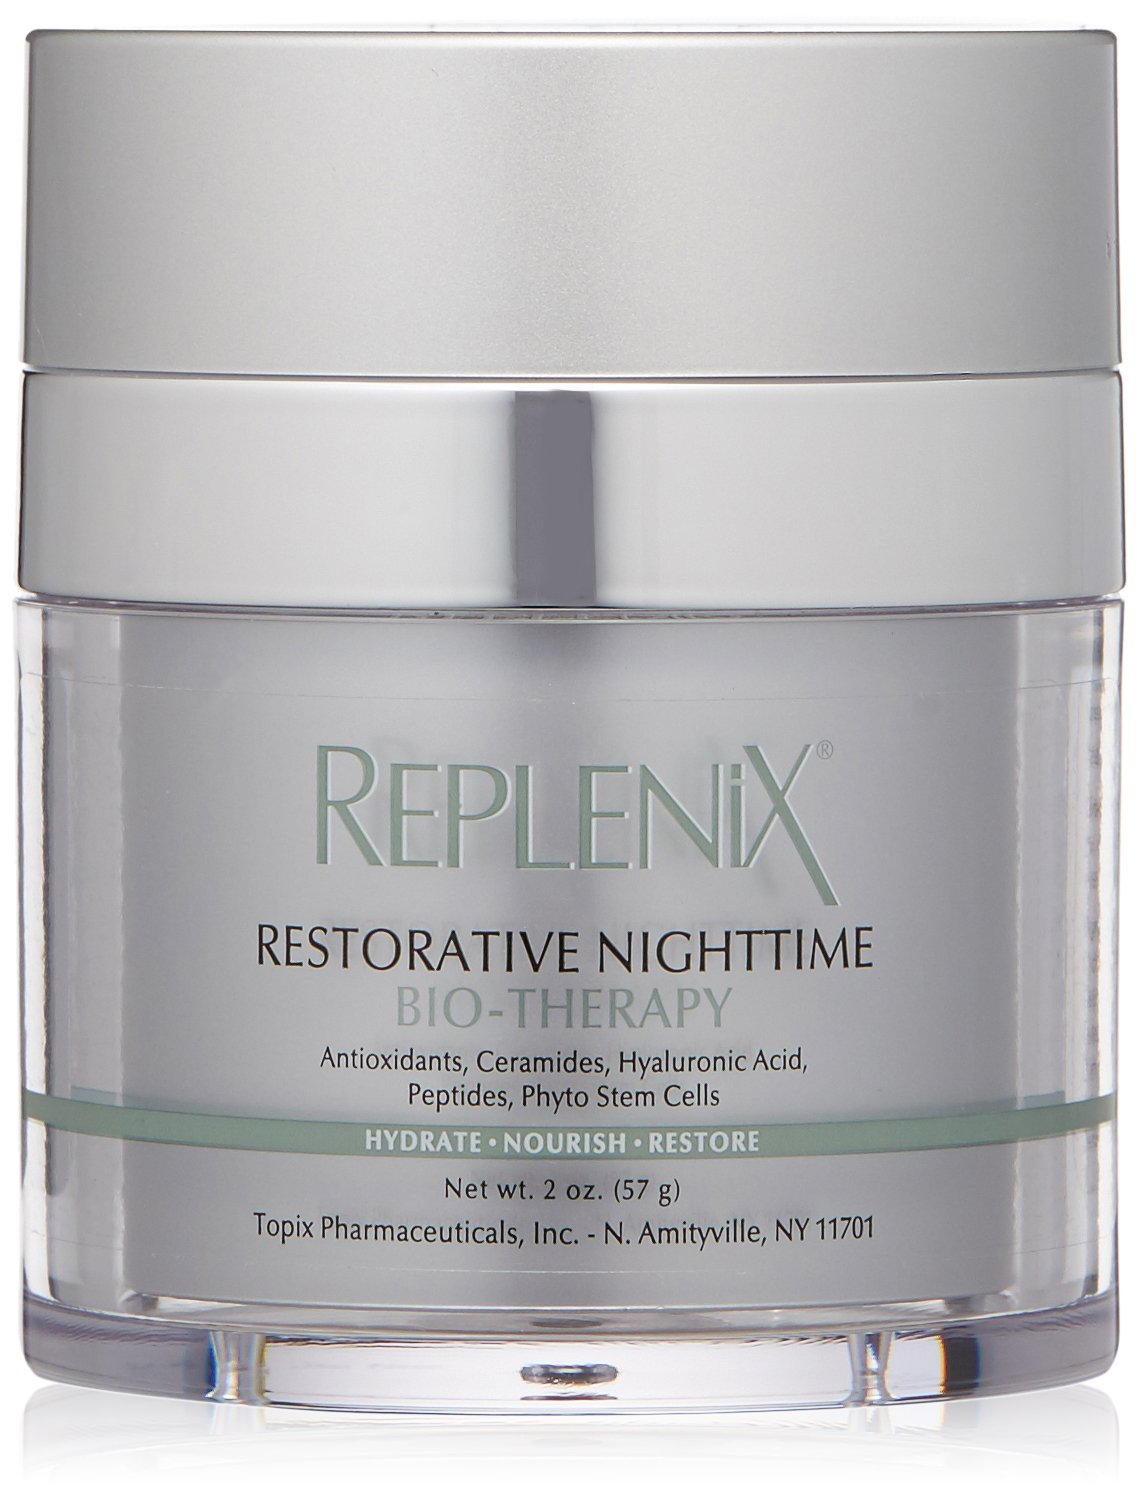 Replenix Restorative Nighttime Bio-Therapy Night Cream, 2 oz